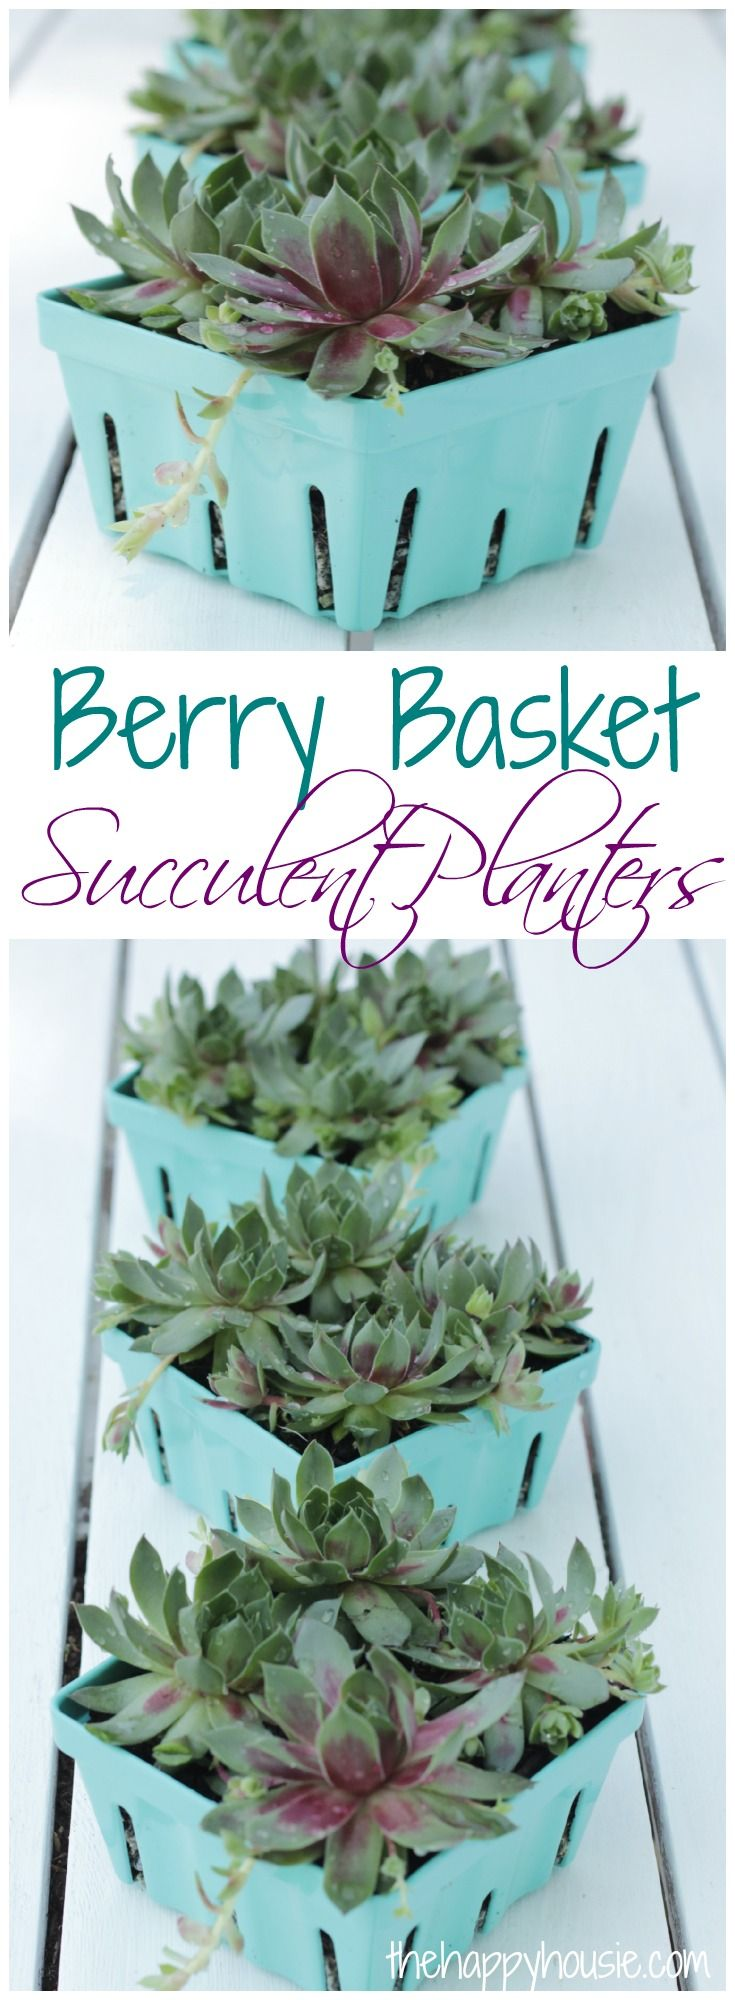 Berry Basket Succulent Planters at thehappyhousie.com